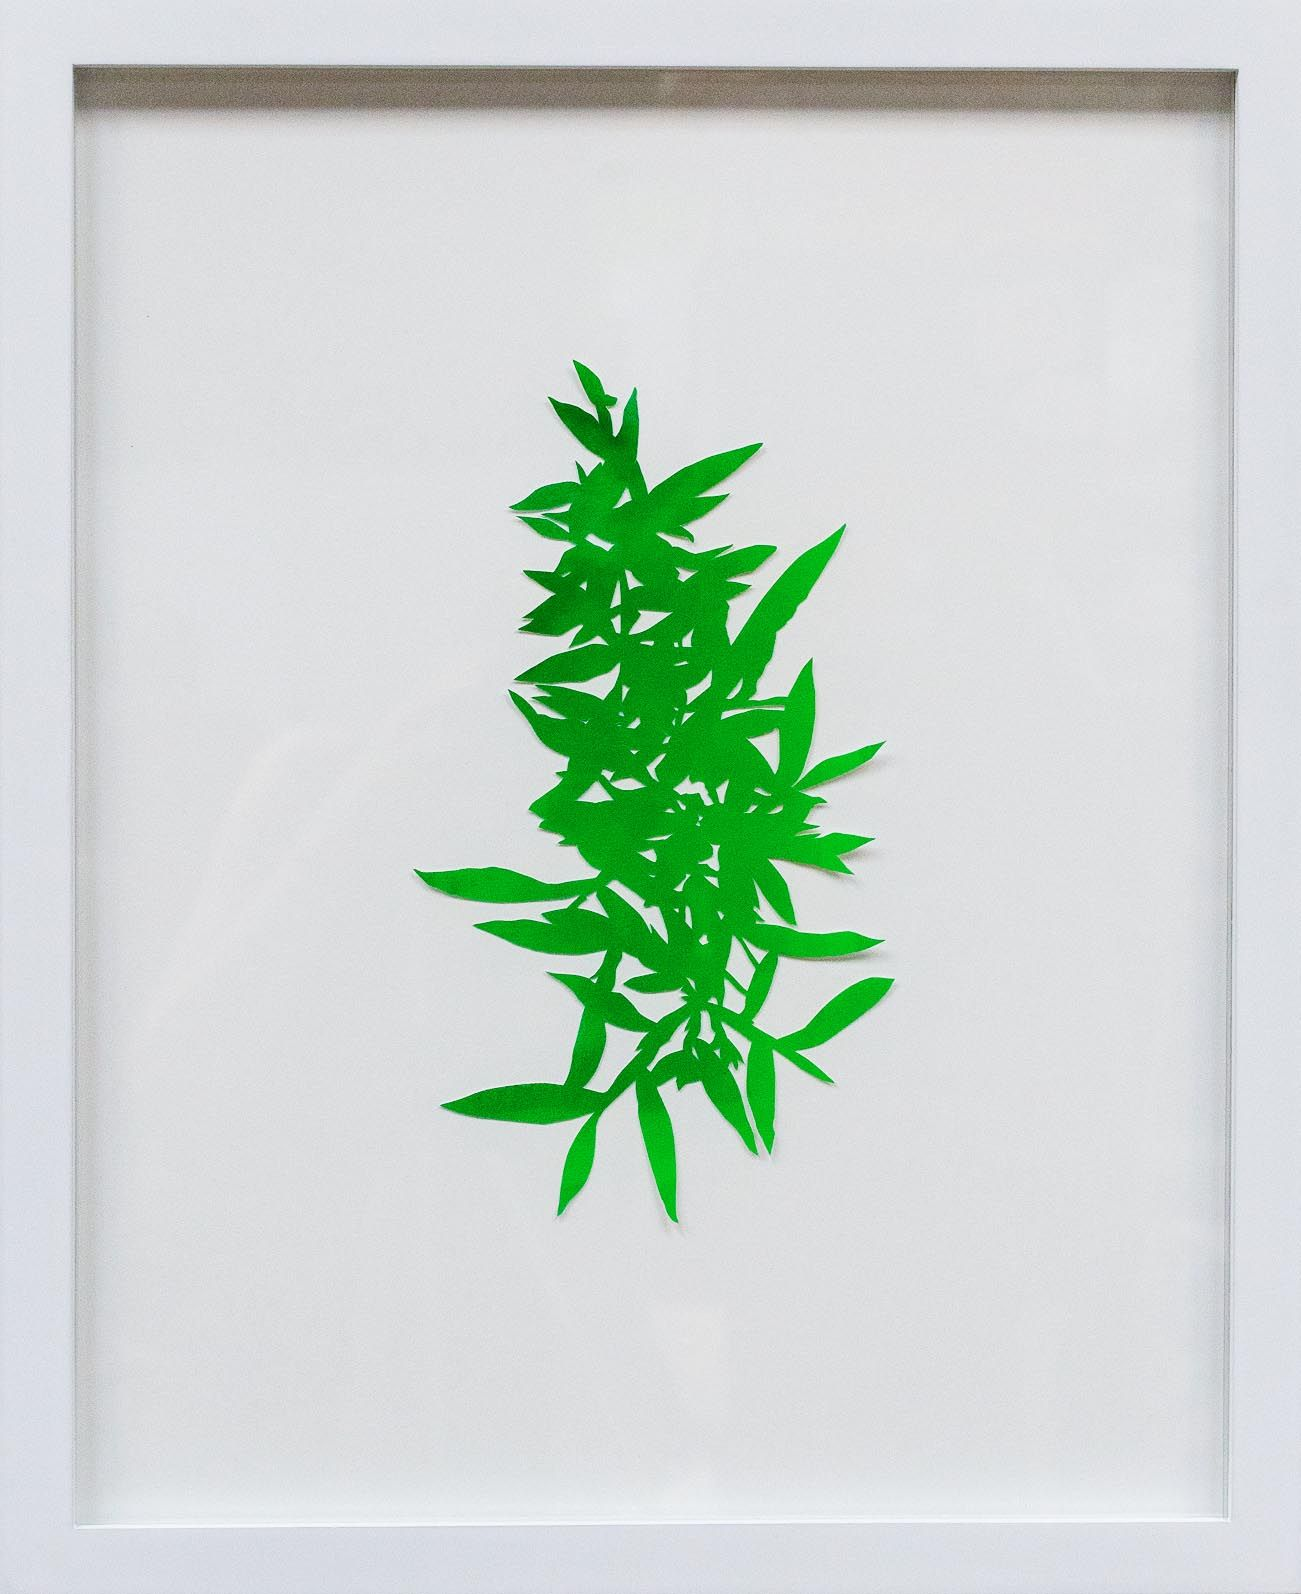 Hannah Cole  Florida Grass, 2018  watercolor on cut paper  Framed: 20h x 16w in 50.80h x 40.64w cm  HC_062